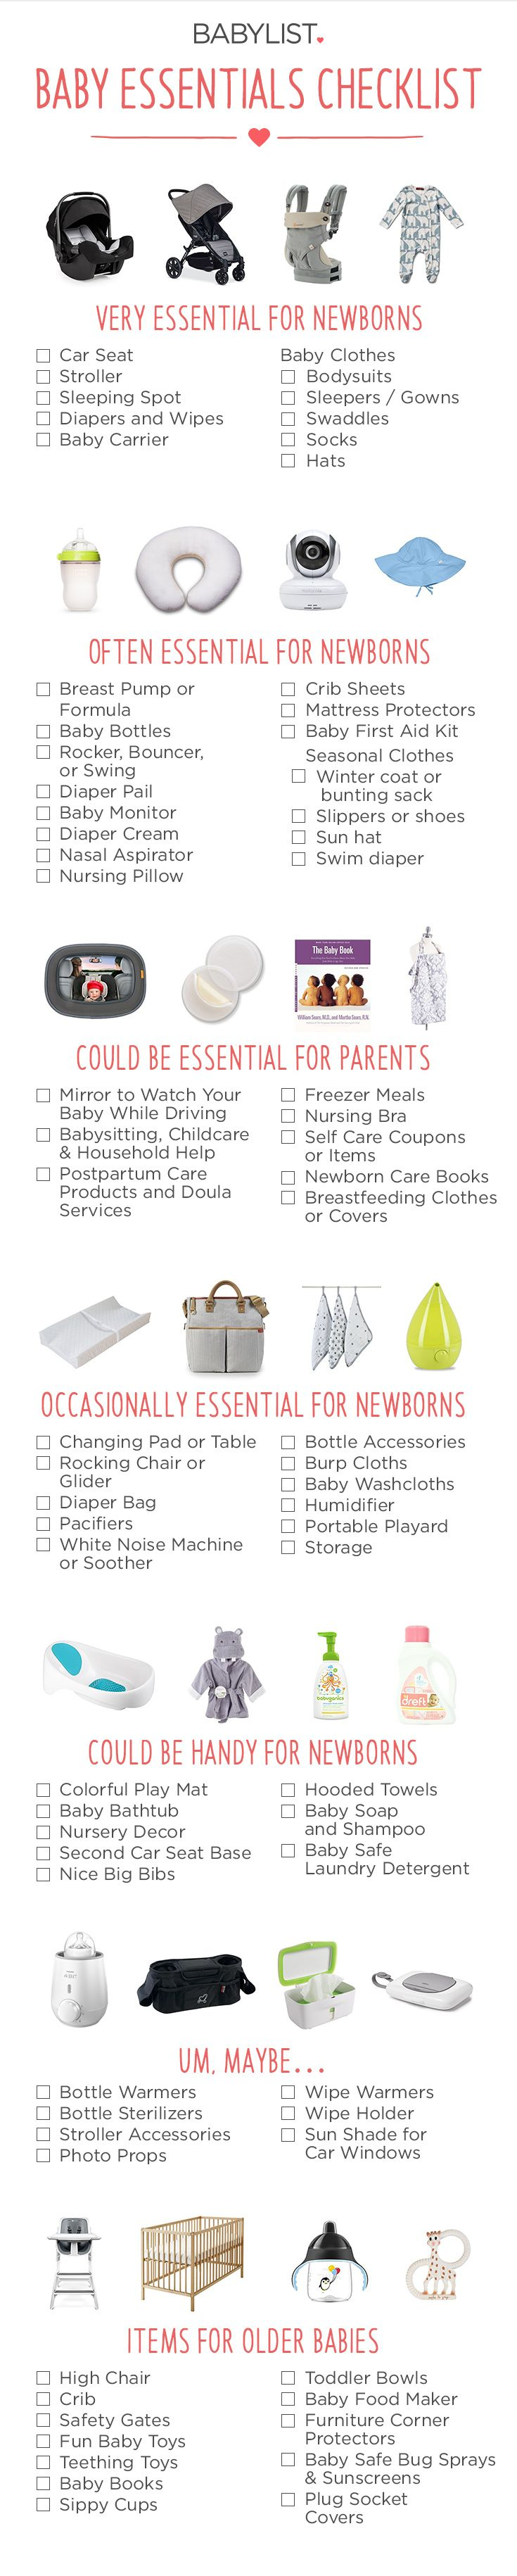 6 Absolute Essential Things You Need to Bring Home a Newborn